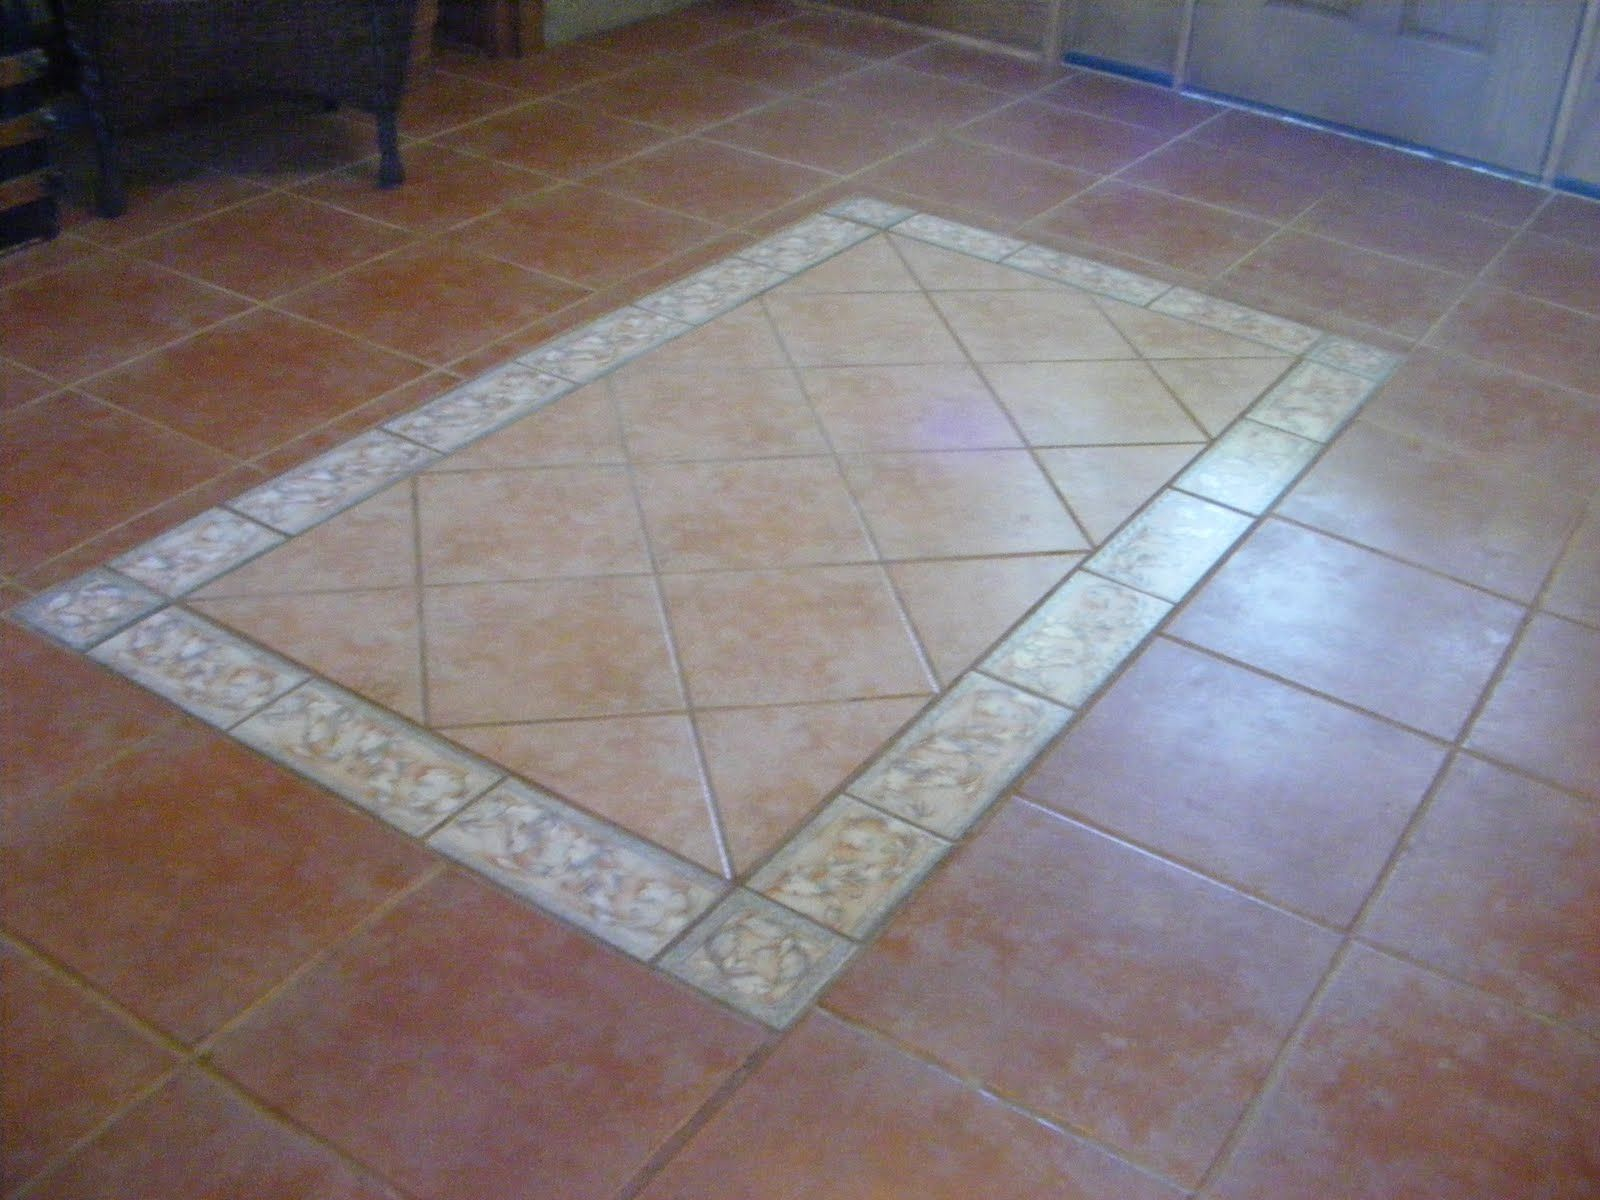 Decoration Floor Tile Design Patterns Of New Inspiration For